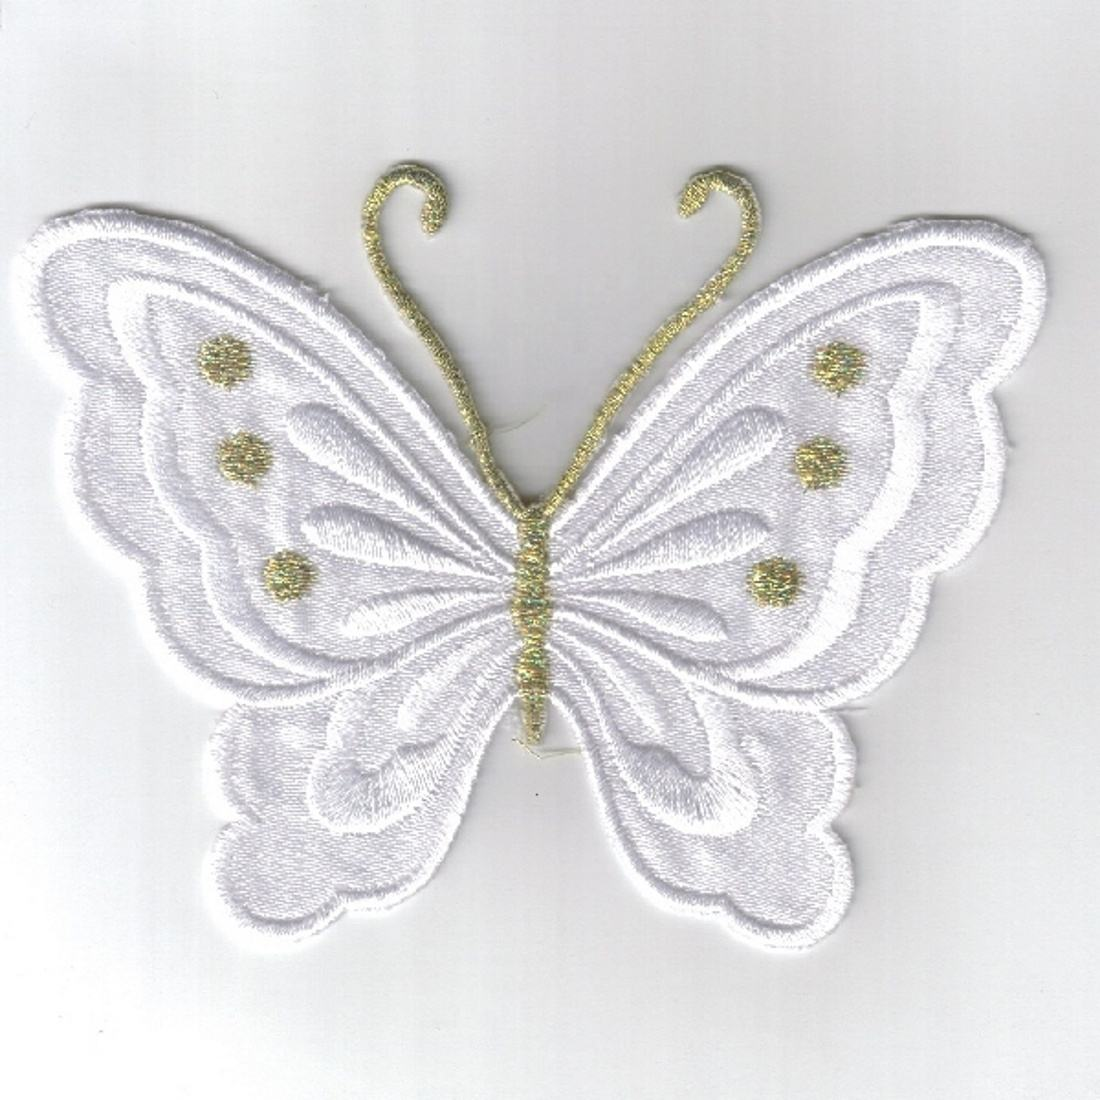 Cheap Butterfly Embroidered Patch Iron On Patches Clothes Insects Sticker Butterflies DIY Sewing Sew On Crests